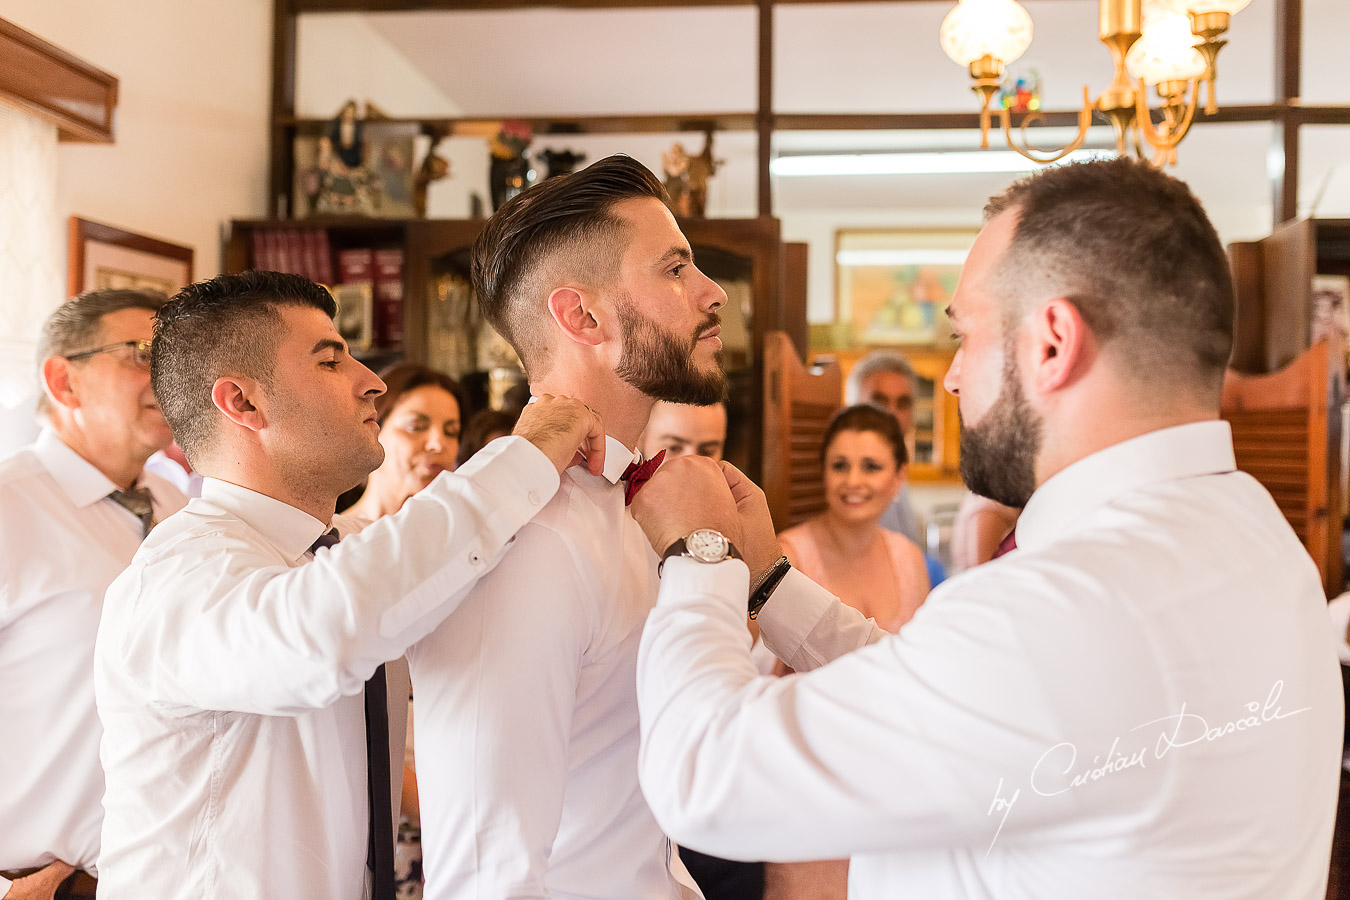 Groom's getting ready photographed at a wedding in Nicosia by Cyprus Wedding Photographer Cristian Dascalu